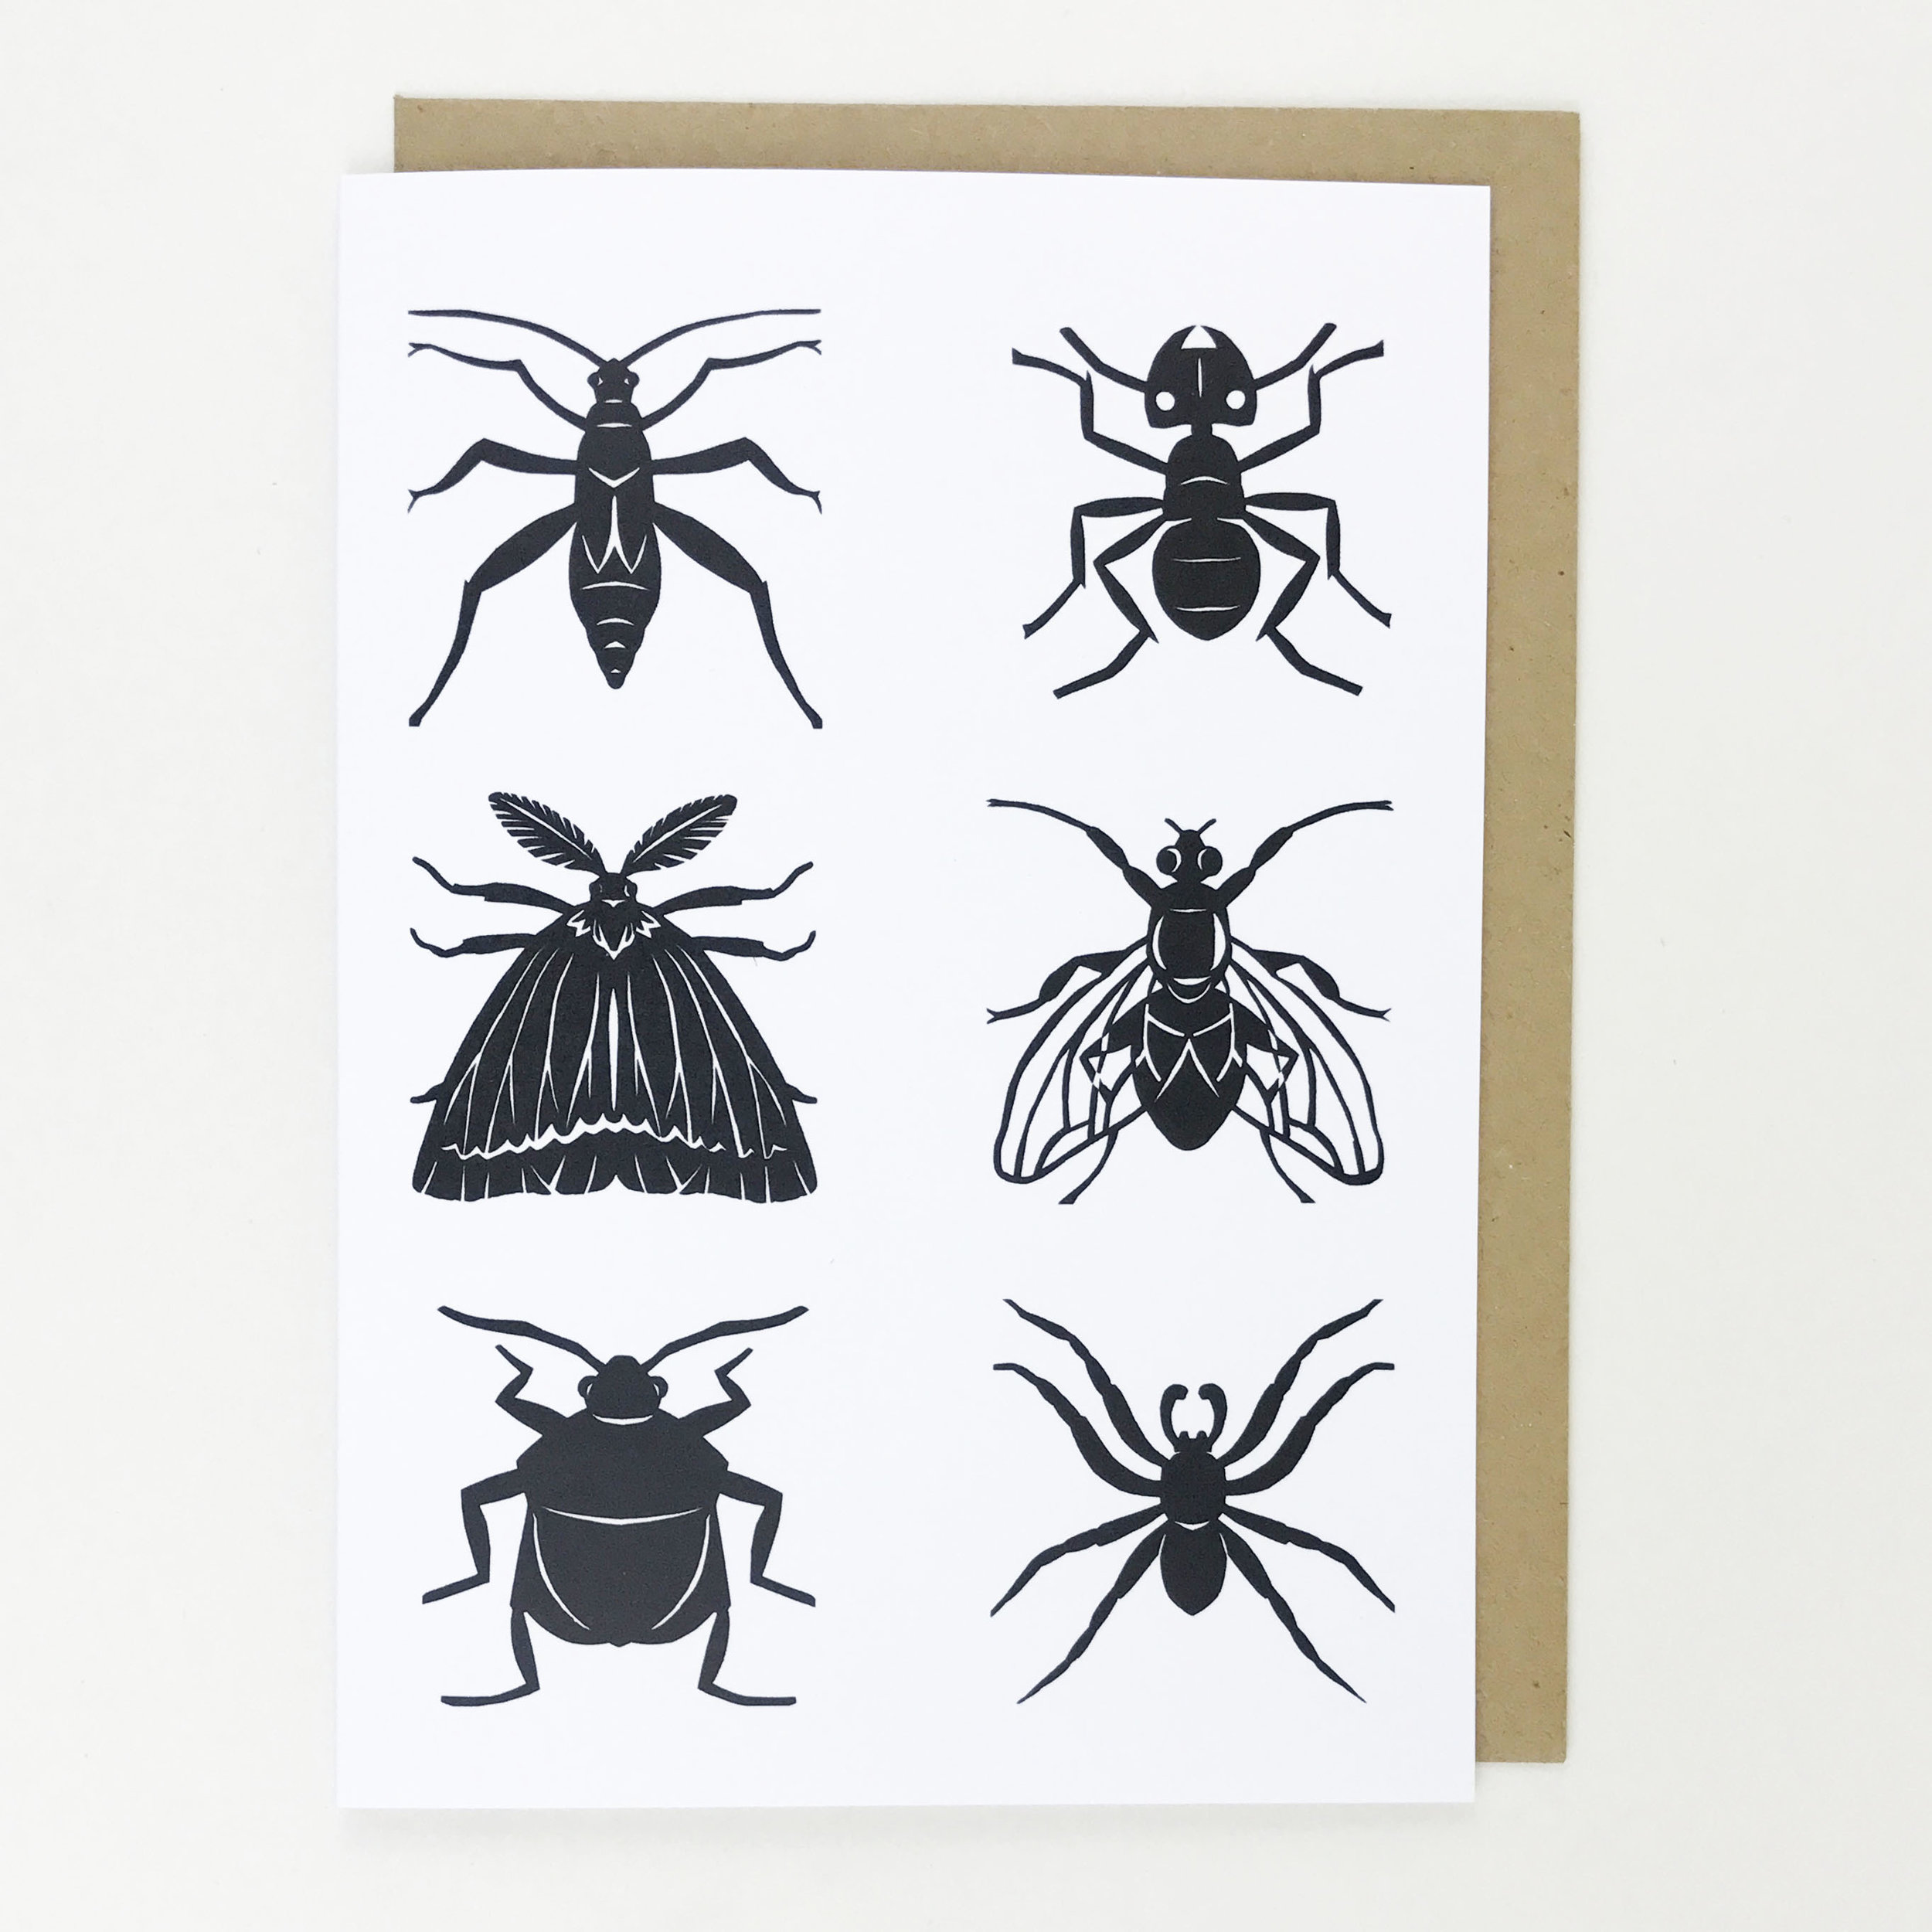 rabkat_insects_notecard.jpg